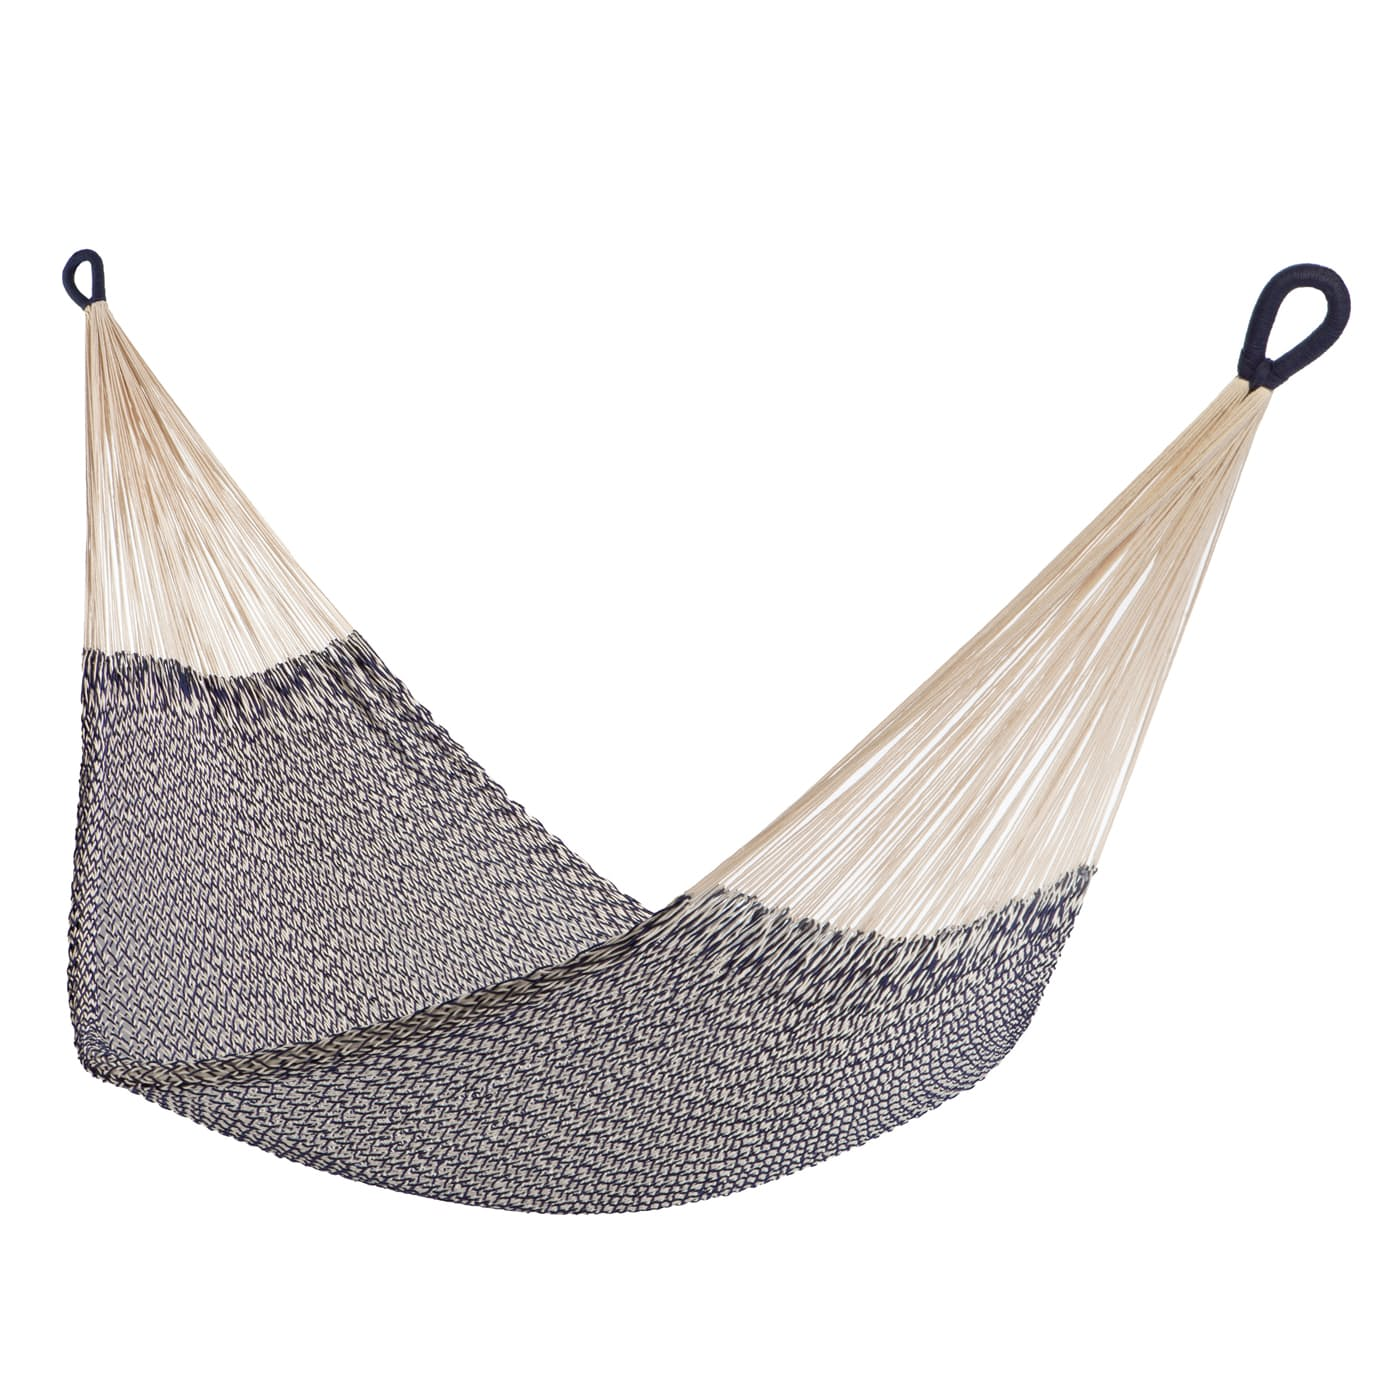 D8jmwfupet yellow leaf hammocks montauk cotton rope hammock 0 original